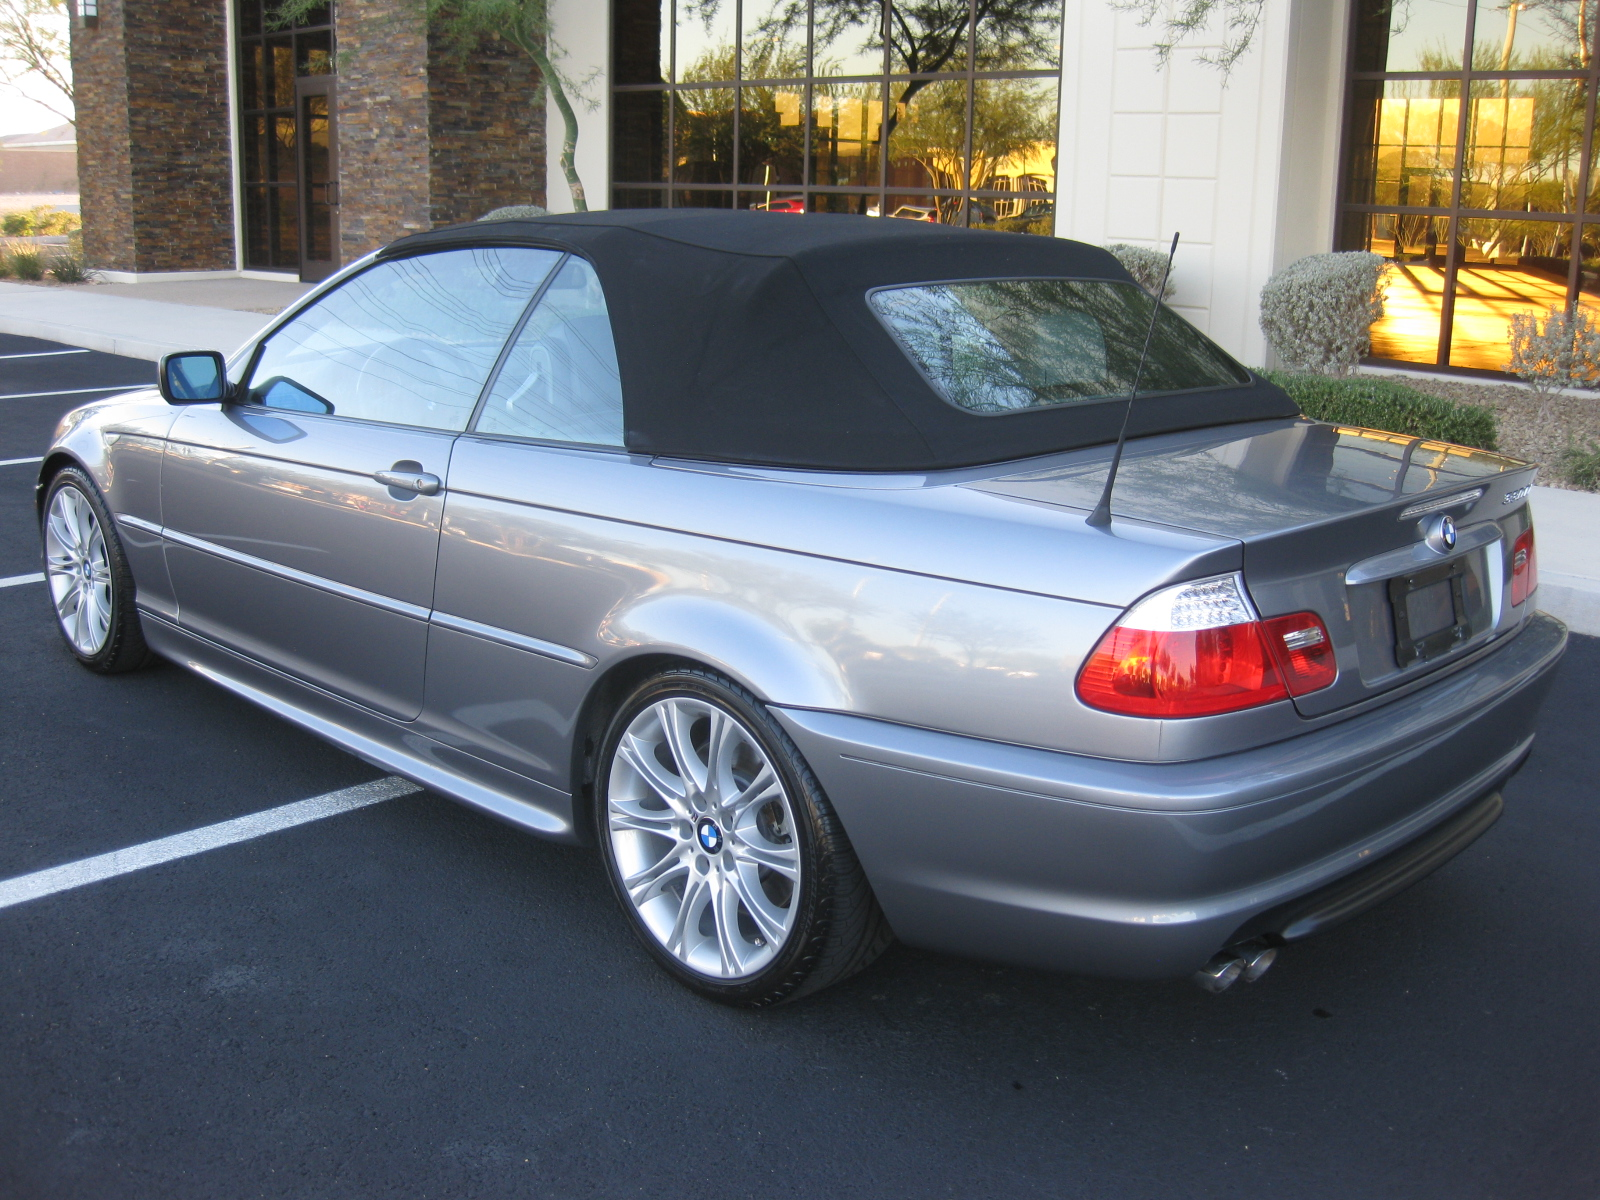 BMW 3 series 328xi 2005 photo - 9